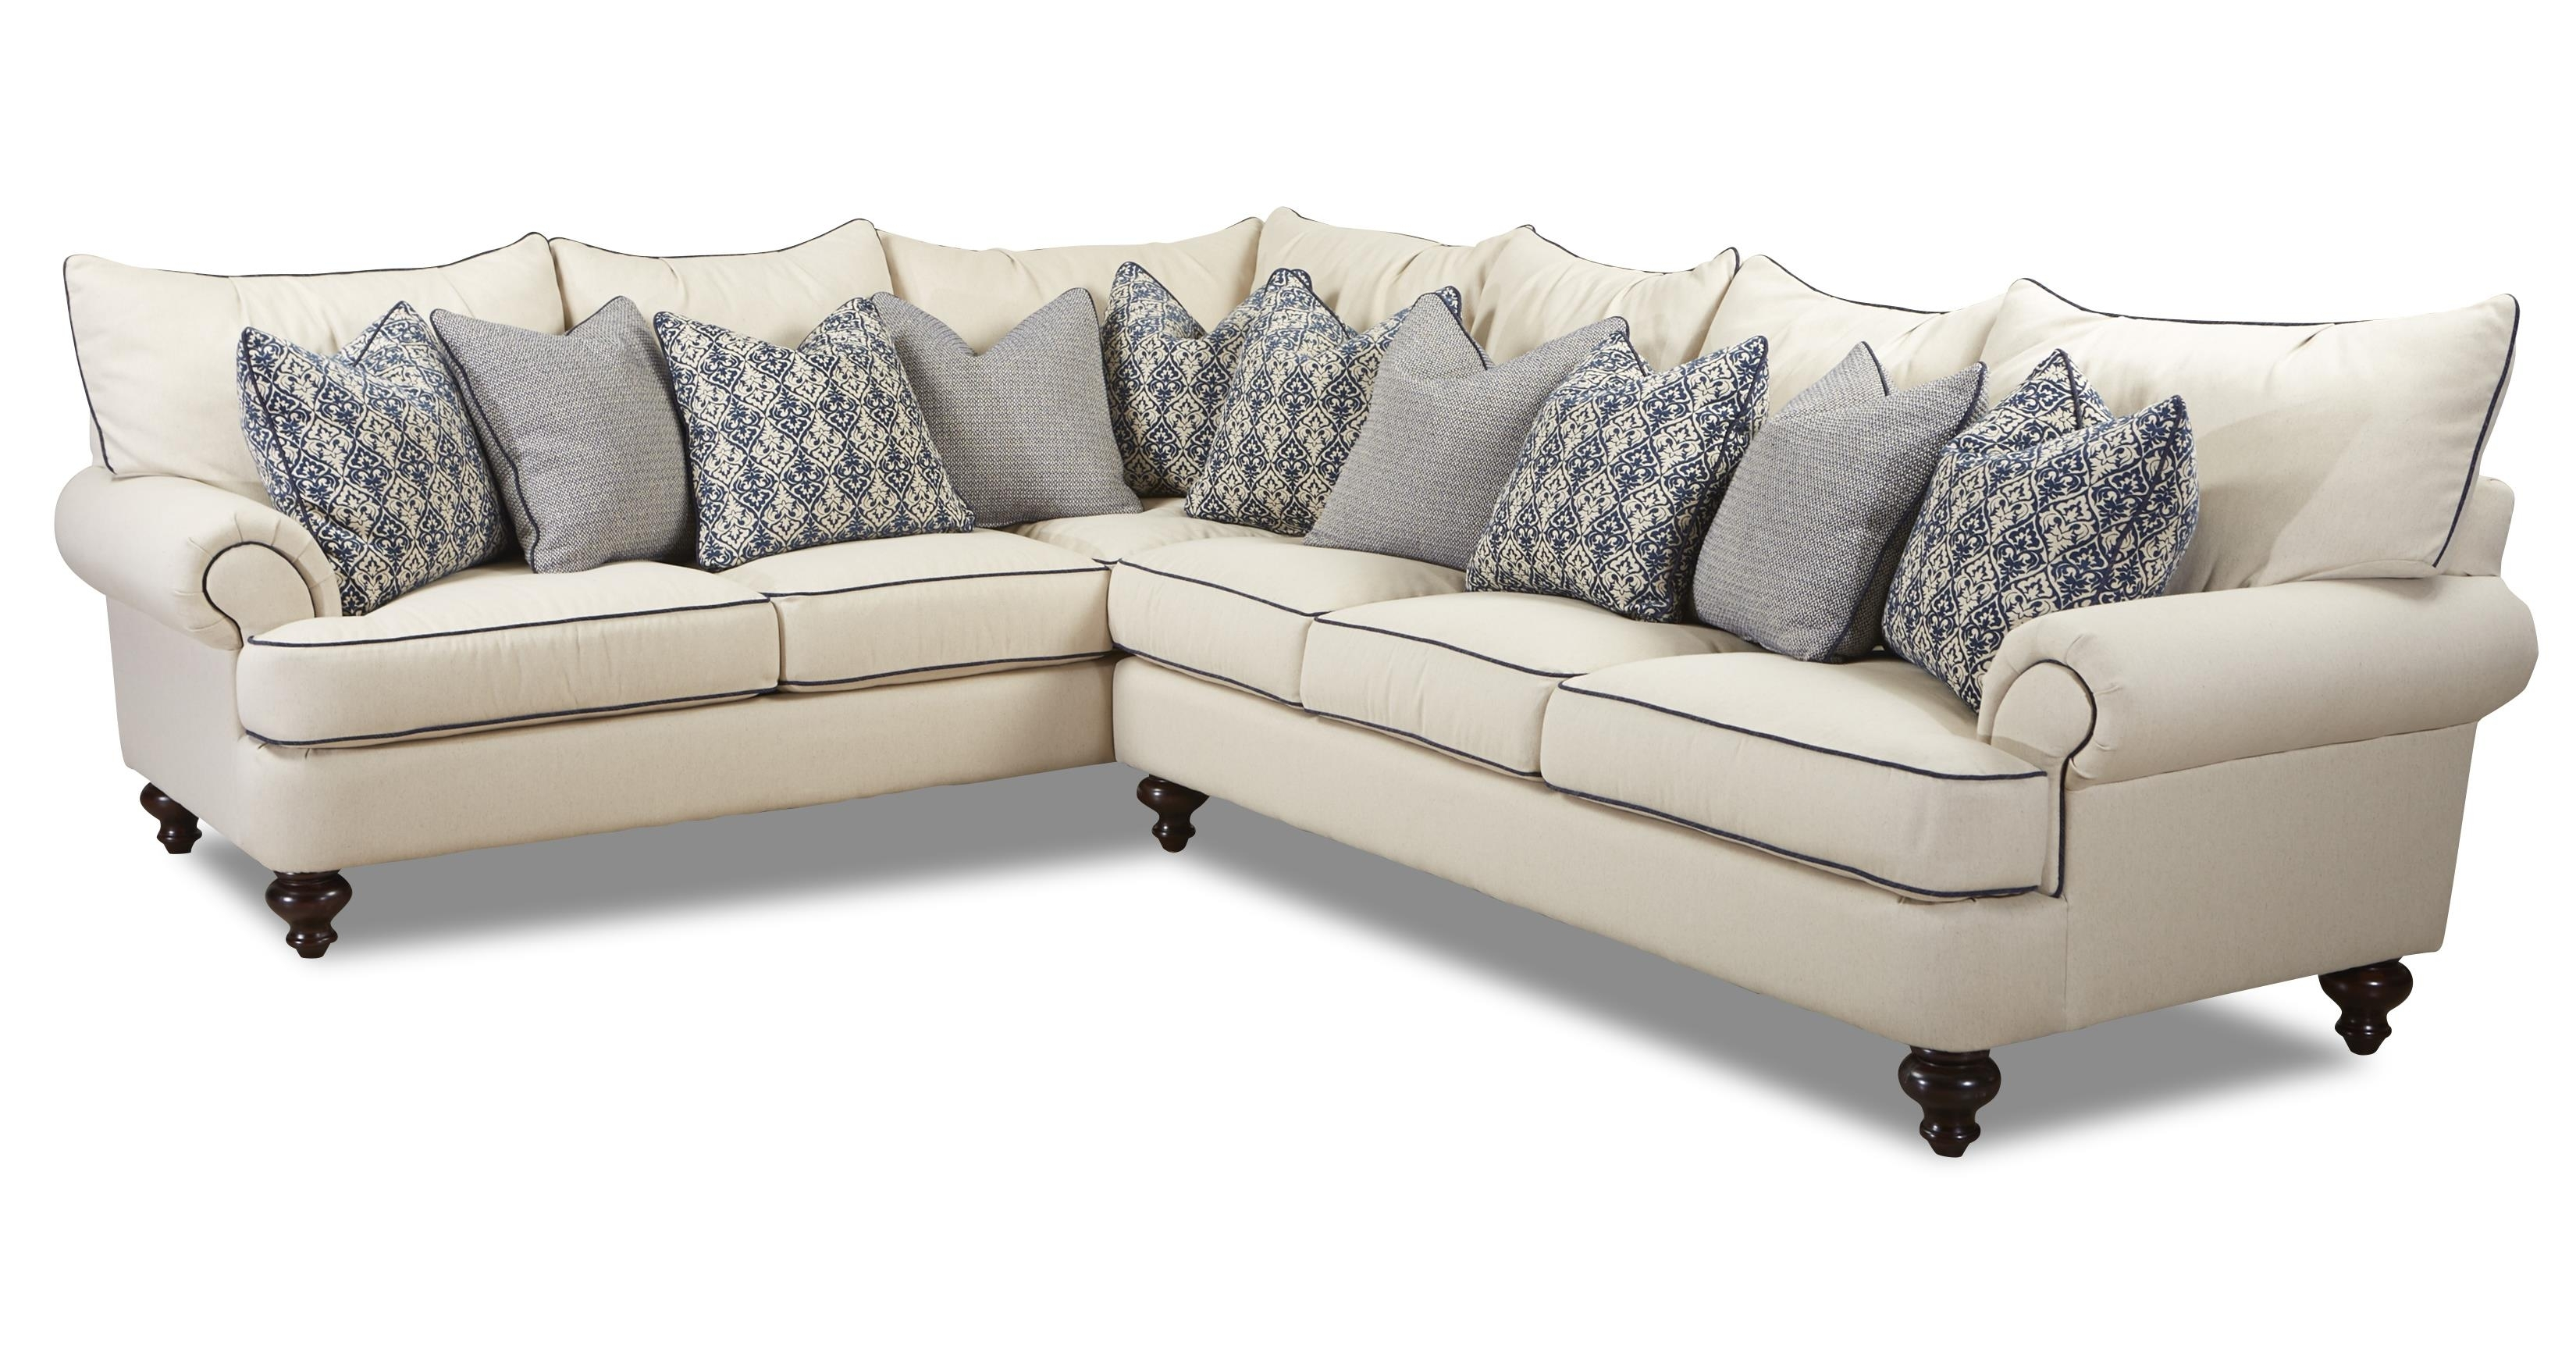 Shabby Chic Sectional Sofaklaussner | Wolf And Gardiner Wolf inside Shabby Chic Sofas (Image 8 of 10)